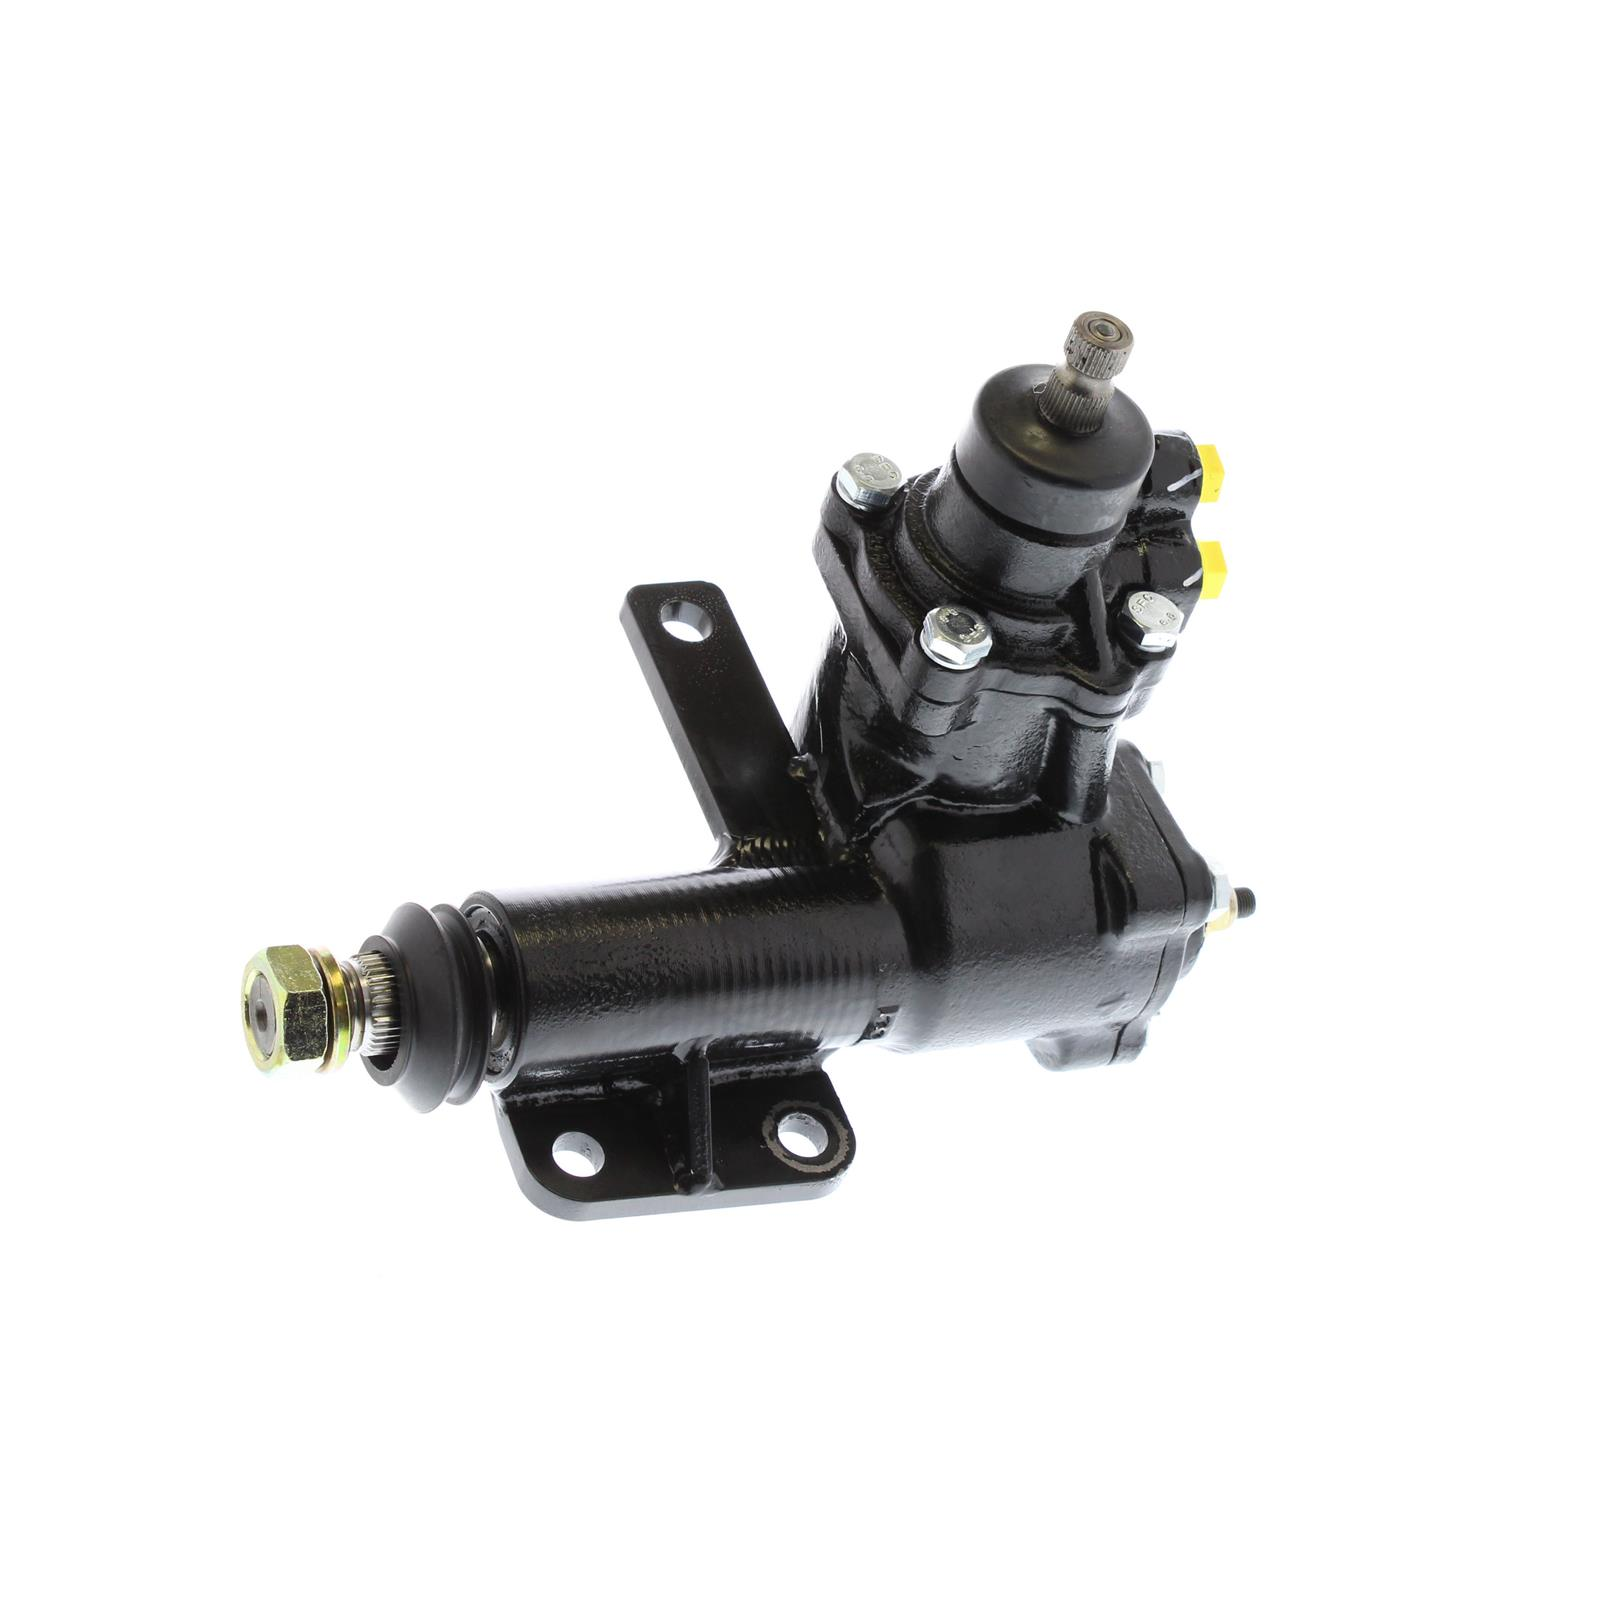 1934 1935 1936 1937 1938 1939 CHRYSLER MODERN FUEL PUMP KIT FOR TODAY/'S FUEL USA